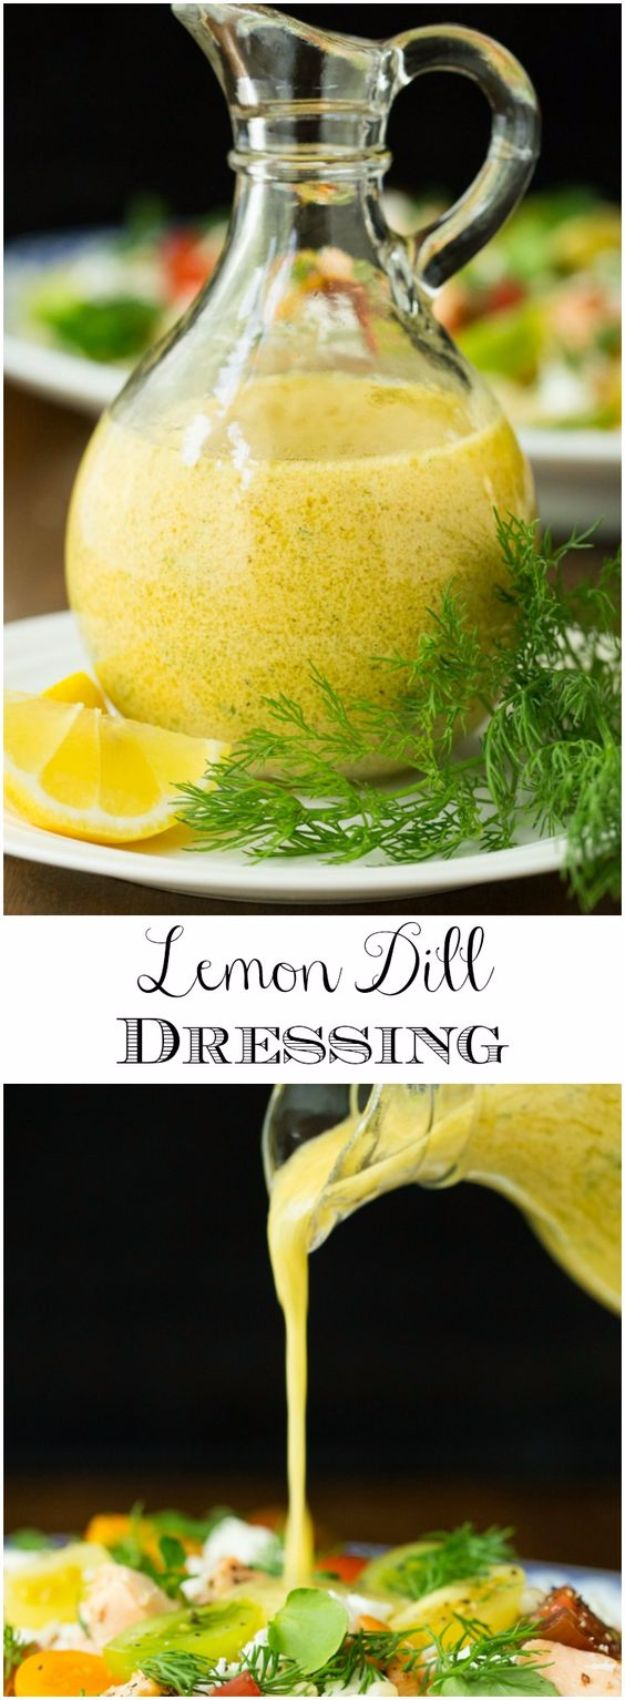 Salad Dressing Recipes - Lemon Dill Dressing - Healthy, Low Calorie and Easy Recipes for Creamy Homeade Dressings - How To Make Vinaigrette, Mango, Greek, Paleo, Balsamic, Ranch, and Italian Copycat Dressings